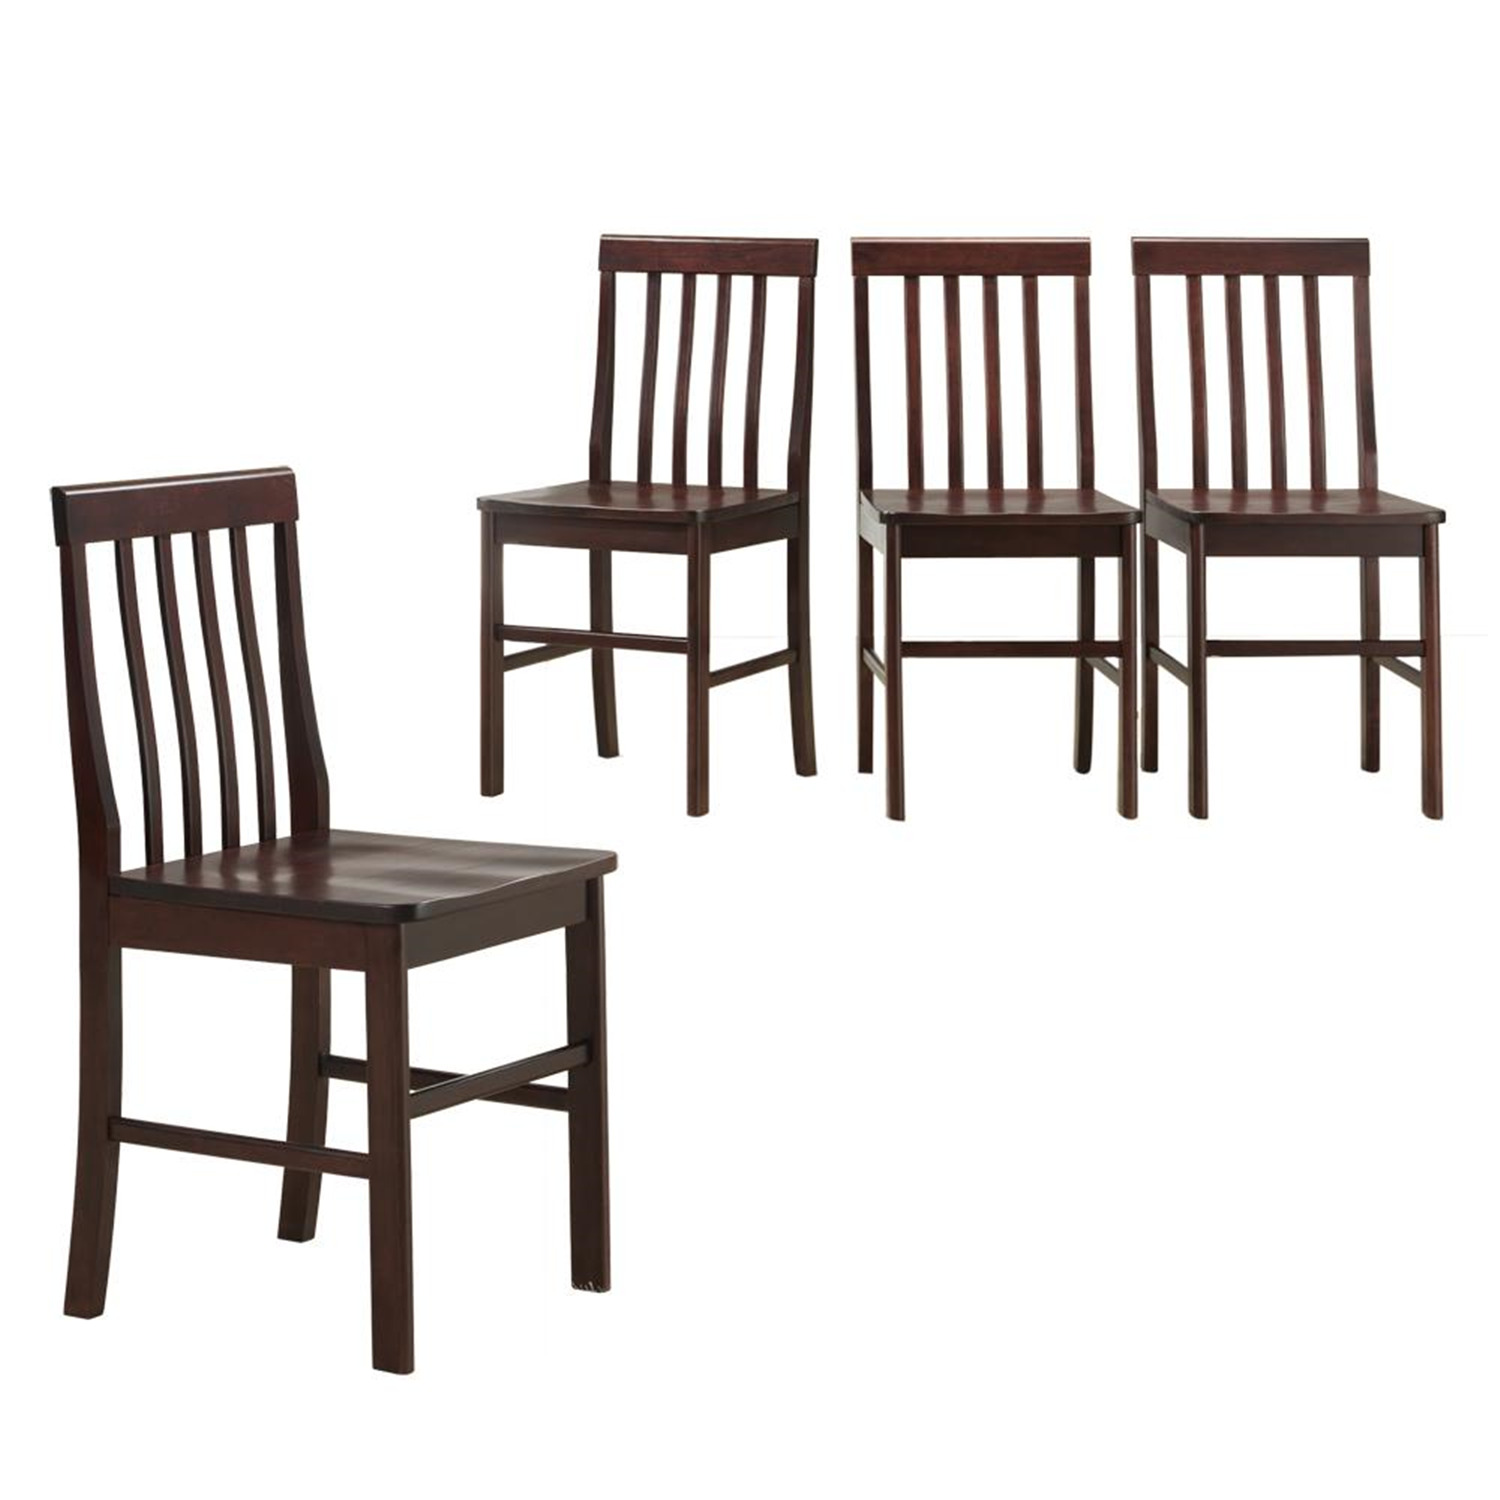 walker edison solid wood dining chairs 4 piece by oj